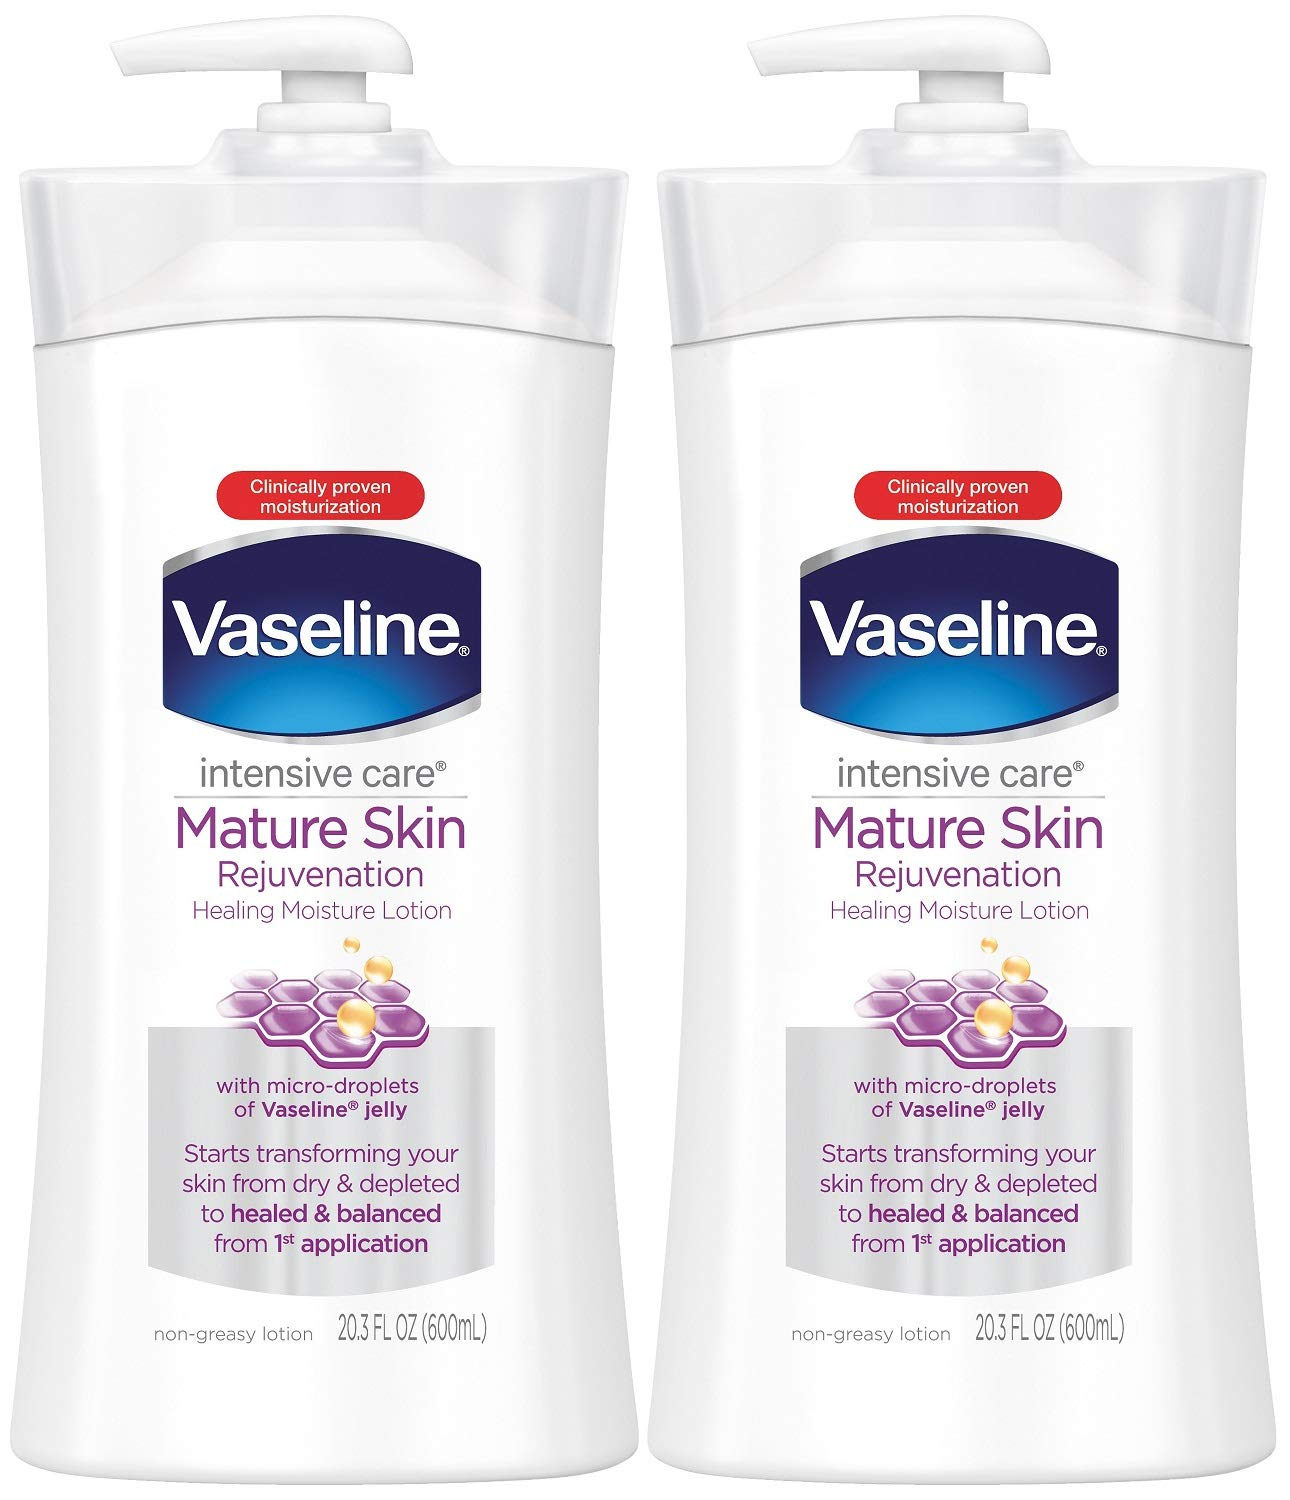 Vaseline Intensive Care Mature Skin Rejuvenation Body Lotion, 20.3 Ounce (Pack of 2) by Vaseline